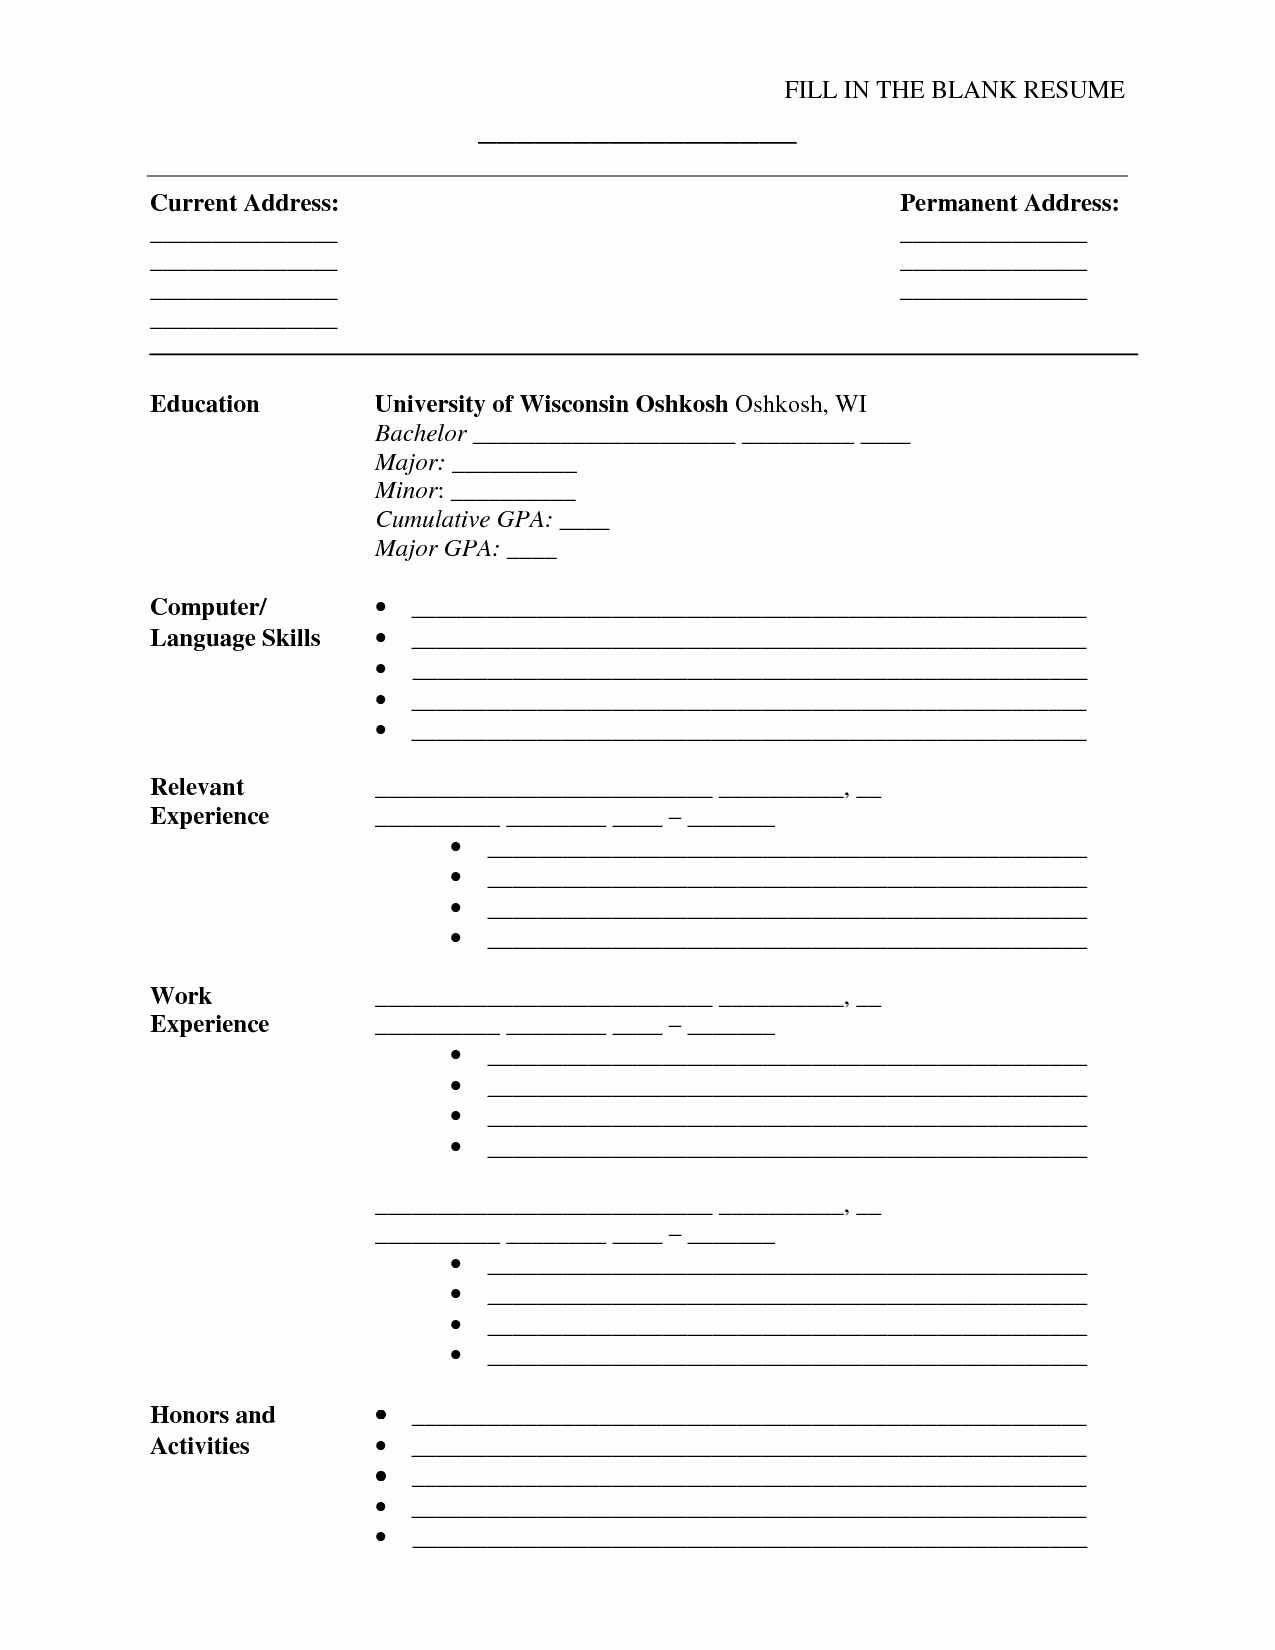 Resumes Fill In the Blanks Unique Fill In the Blank Resume Pdf Umecareer